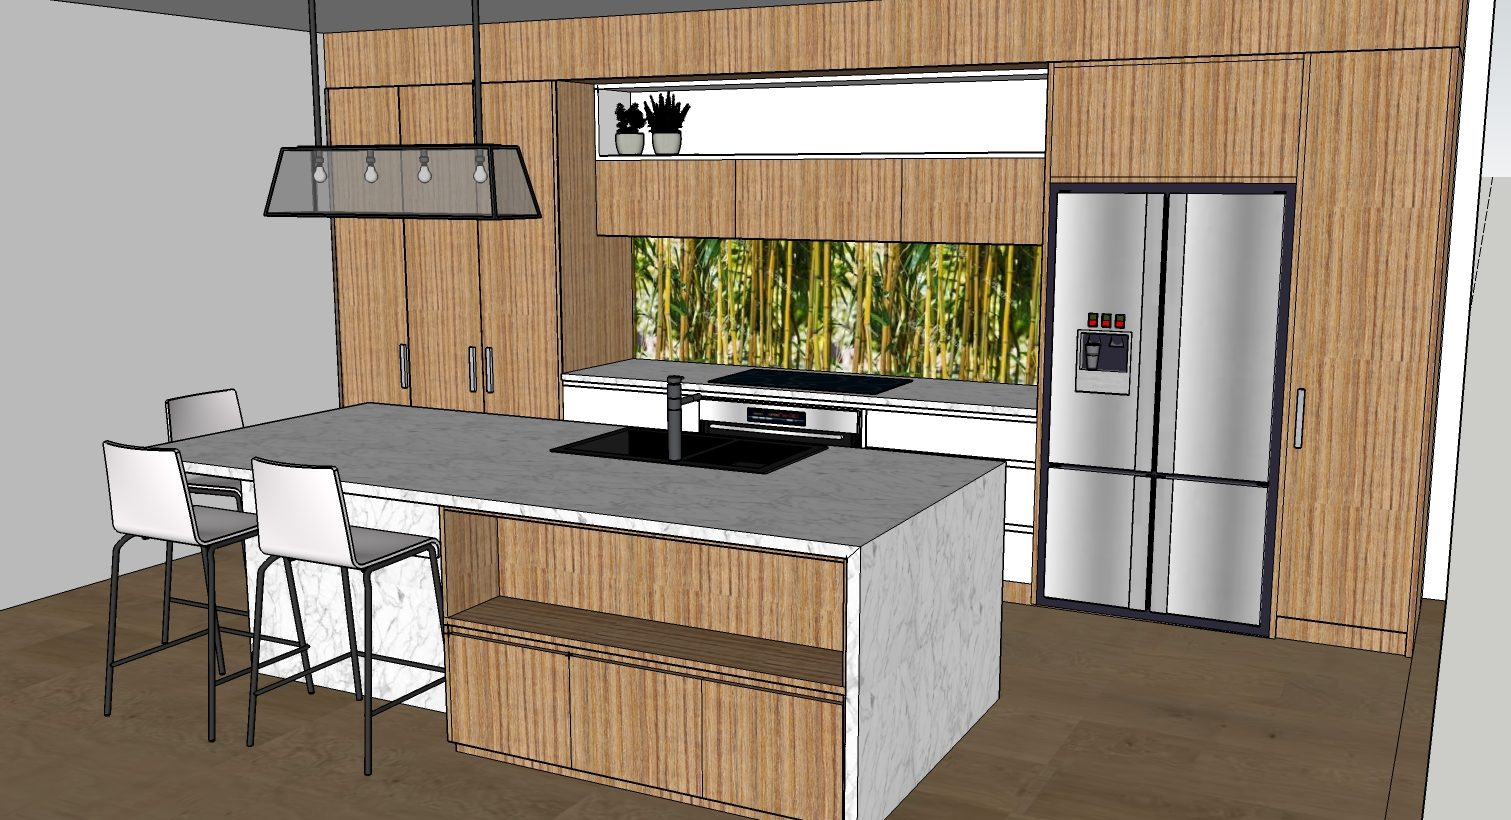 3D SketchUp for Kitchens and Bathrooms